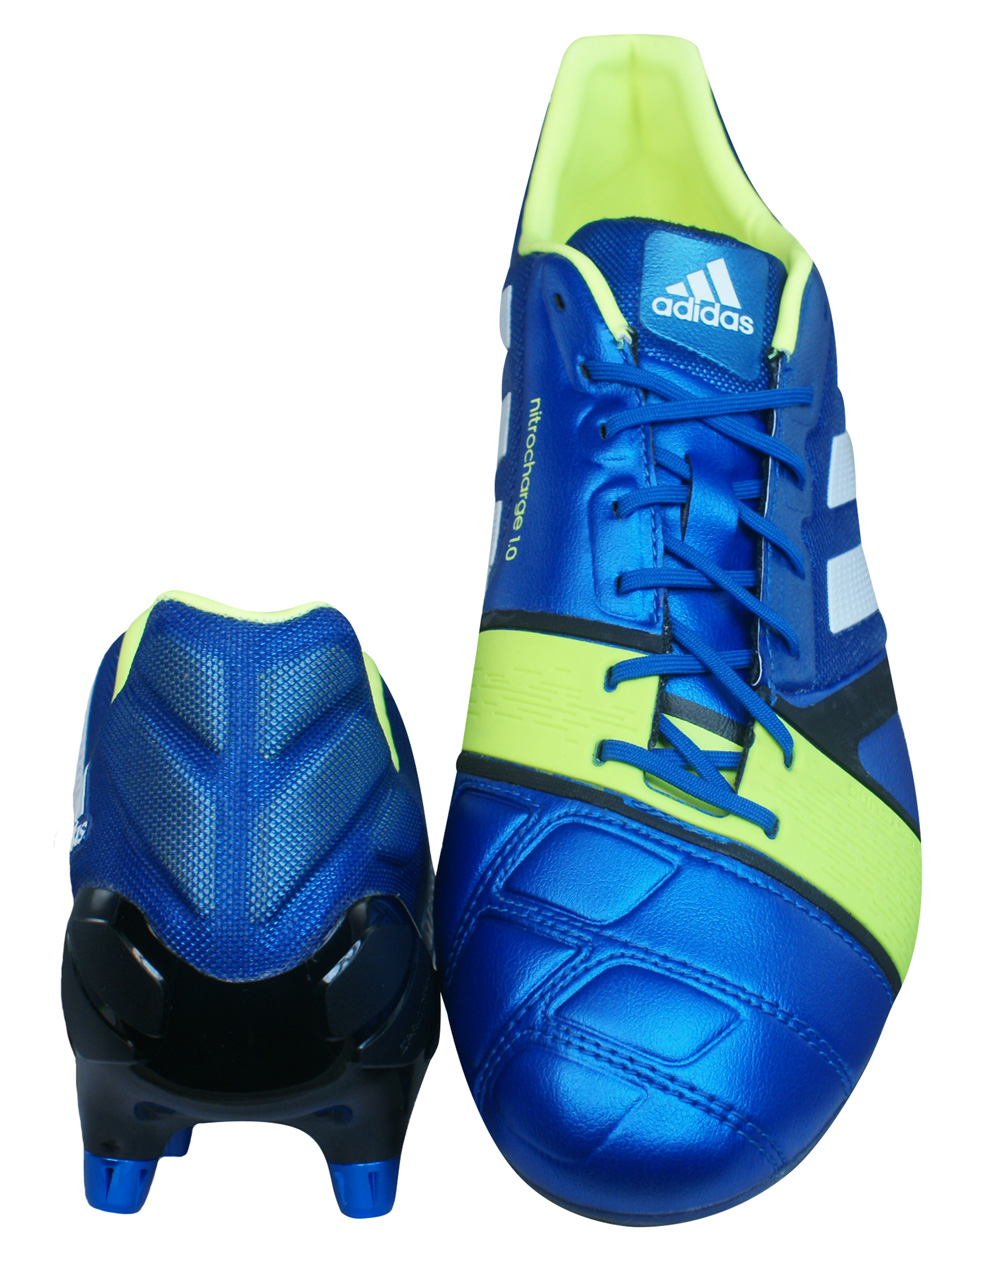 new style 37be2 cca33 adidas Nitrocharge 1.0 XTRX SG Mens Football Boots - Cleats - Blue